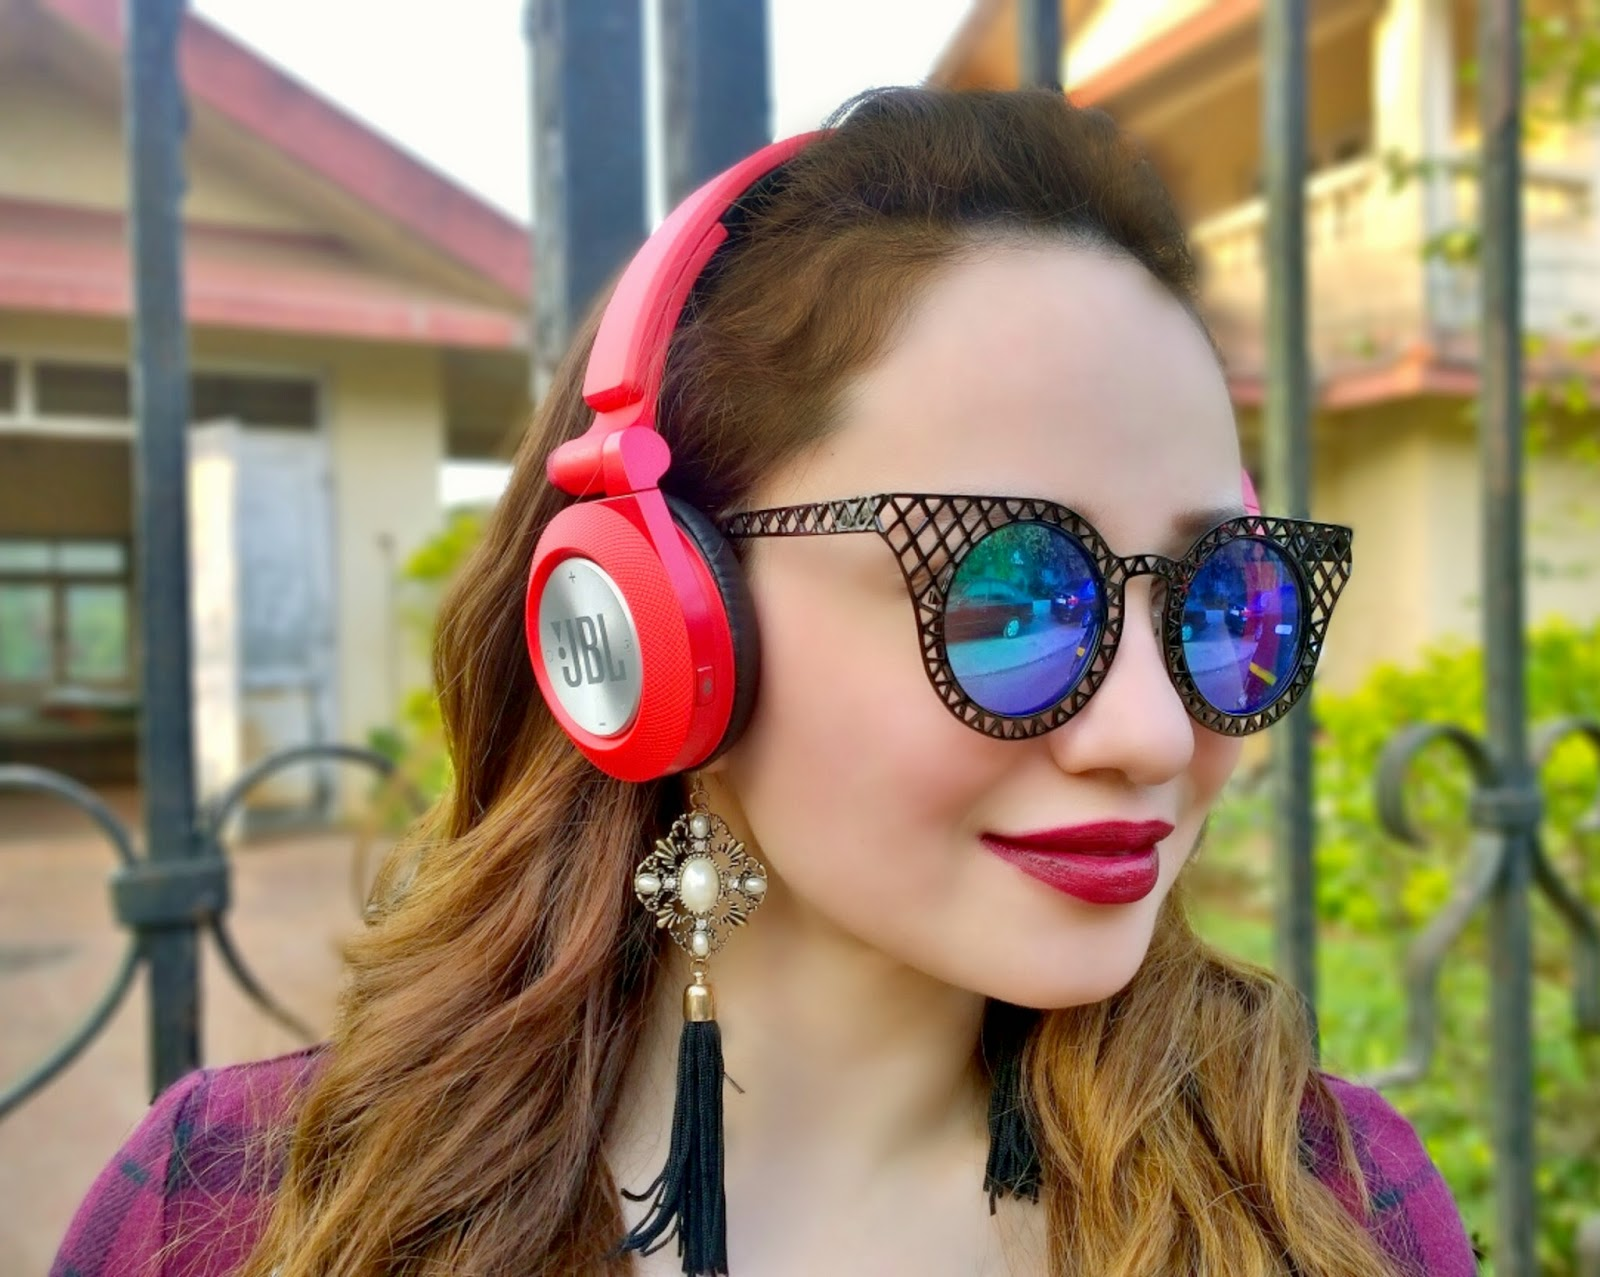 Candy Red JBL Wireless Headphones, Cat Eye Sunglasses, MAC Diva Lipstick